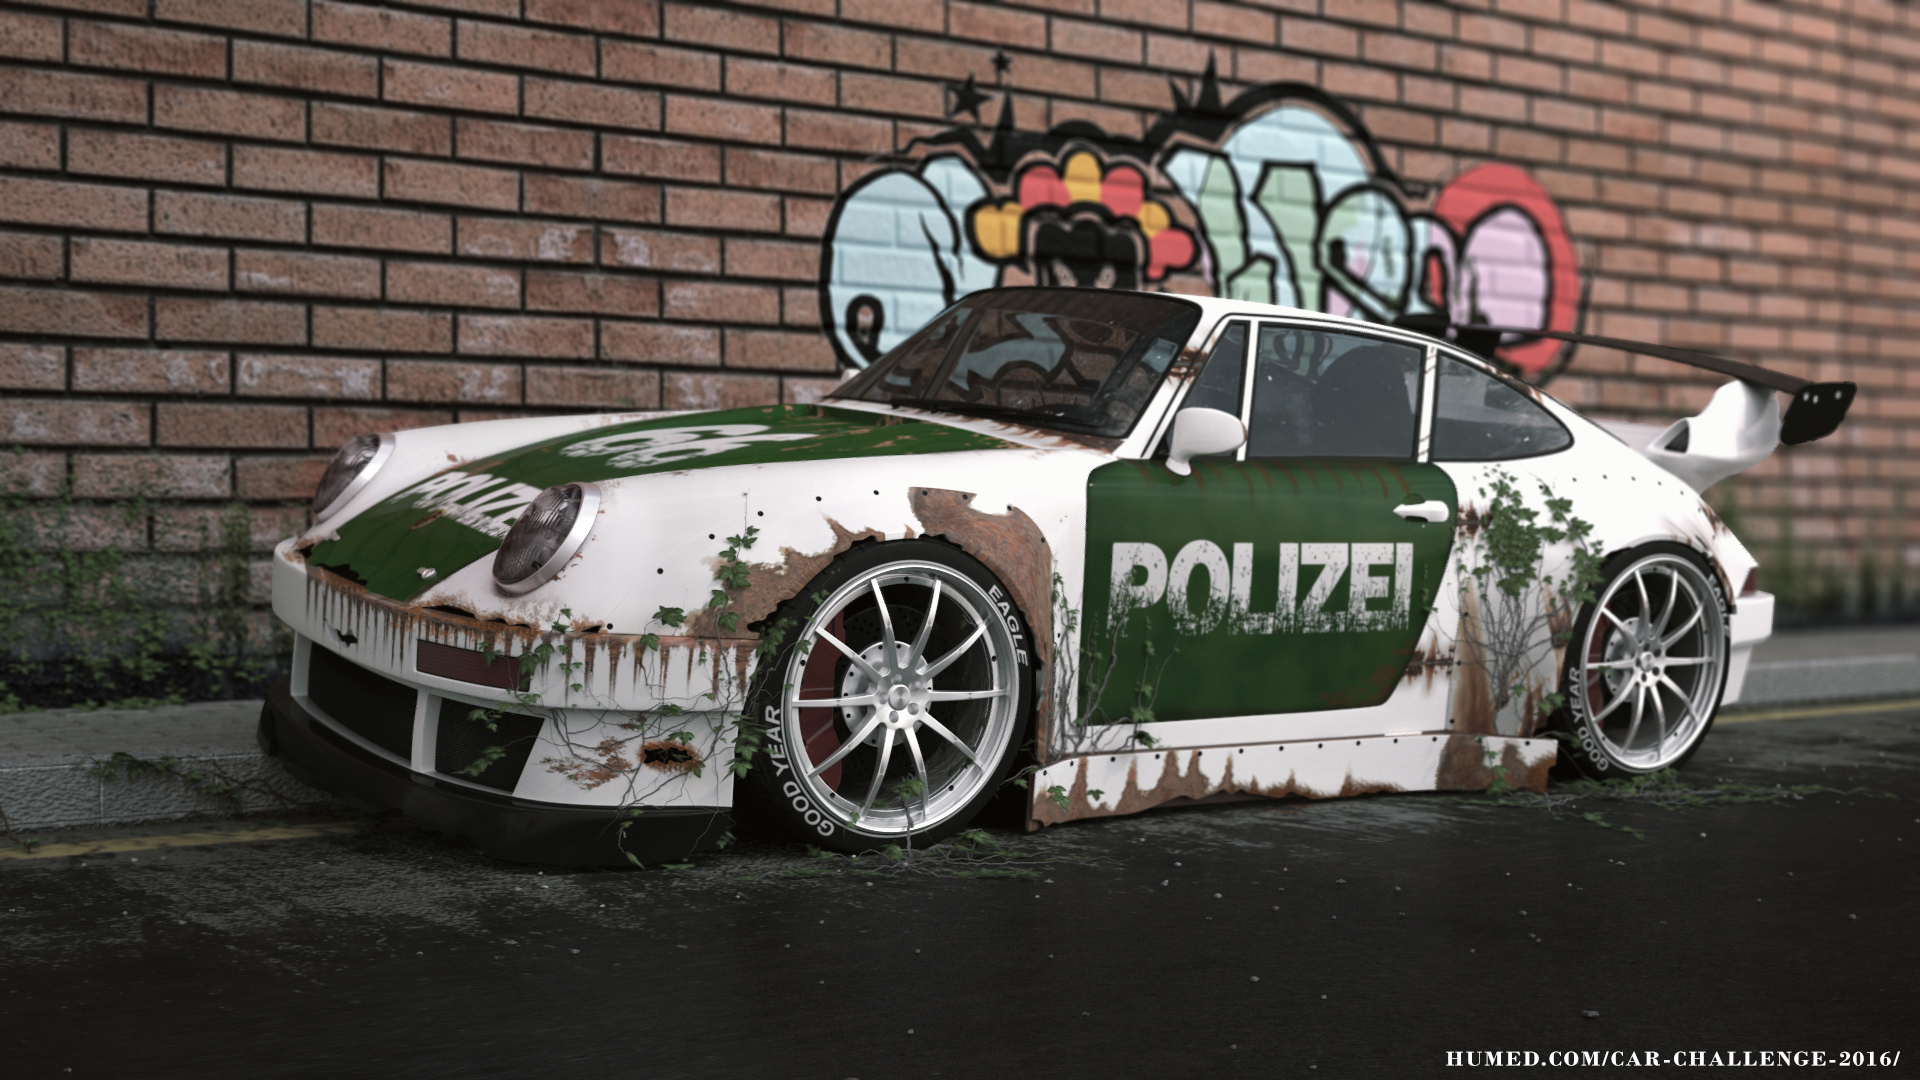 Old police Porsche 993 tuning 3d art